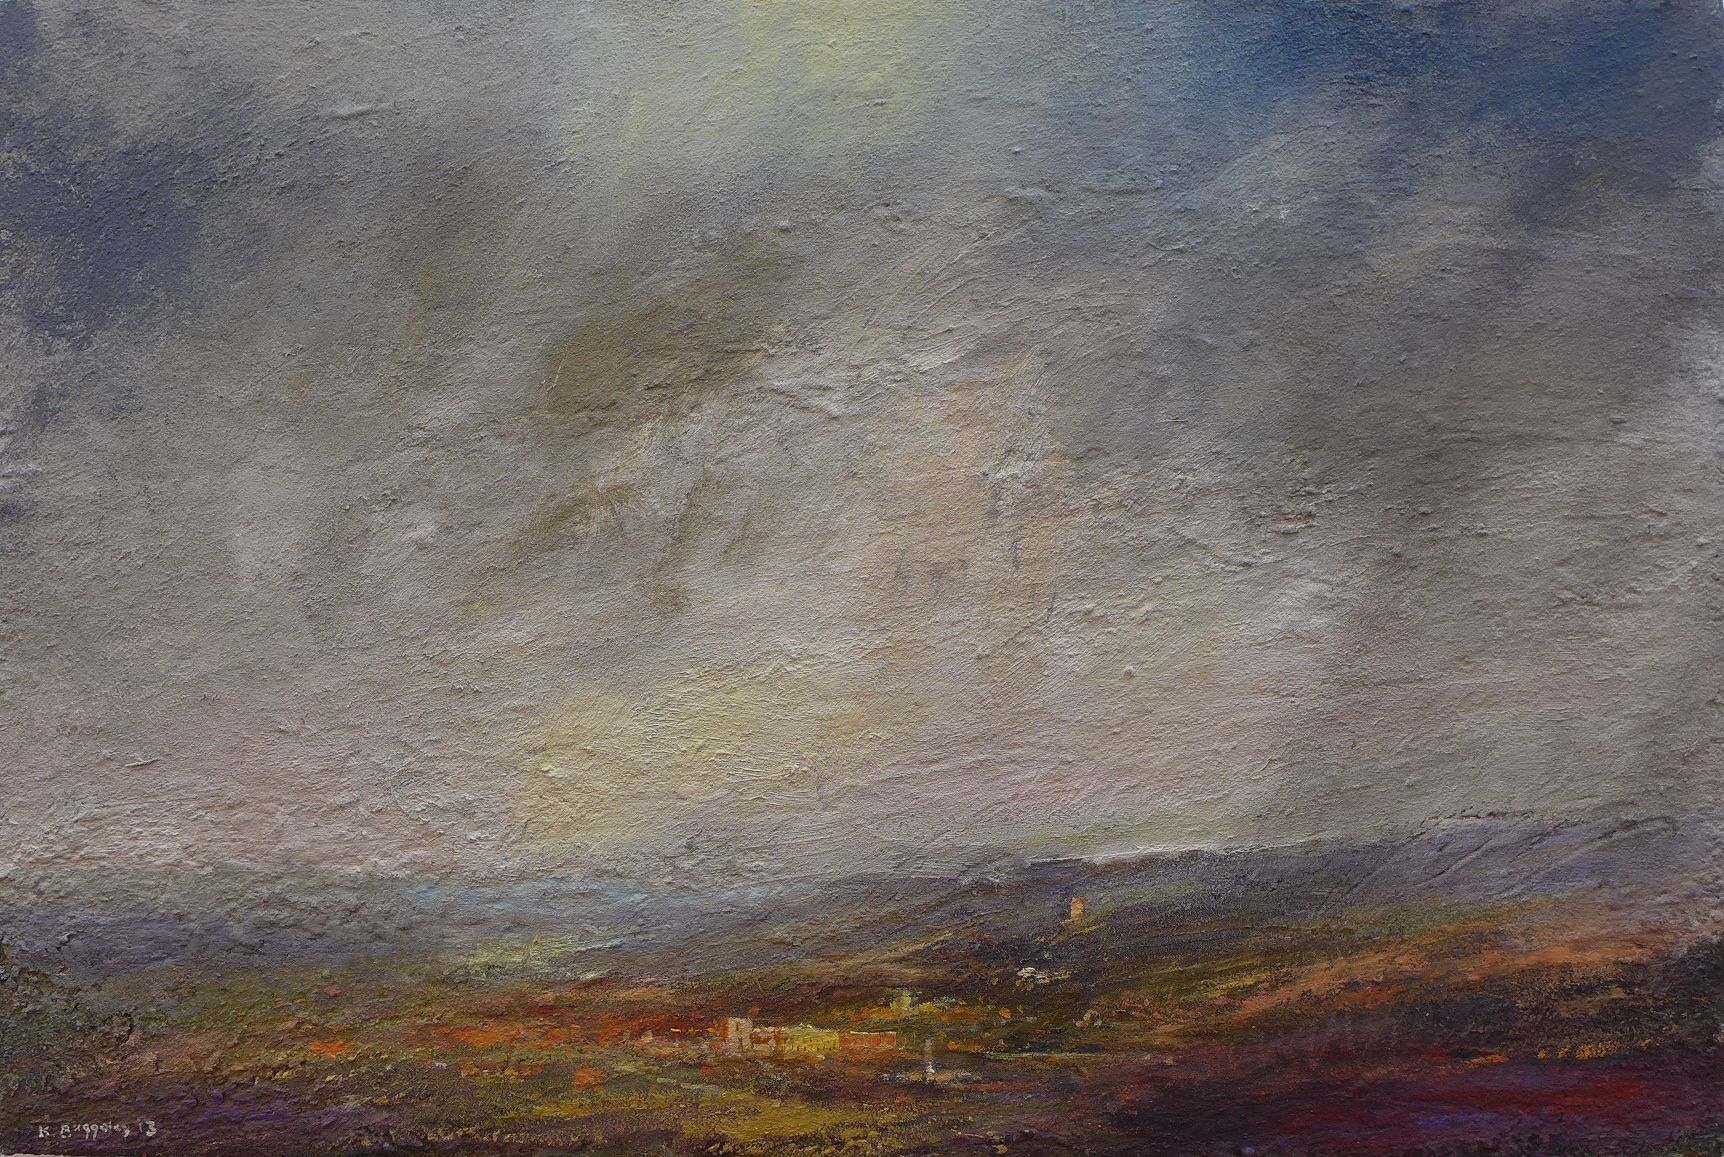 Kristan Baggaley: 'Autumn Shower over Chatsworth'. Part of the Chatsworth exhibition at gallerytop starting 10 May 2014